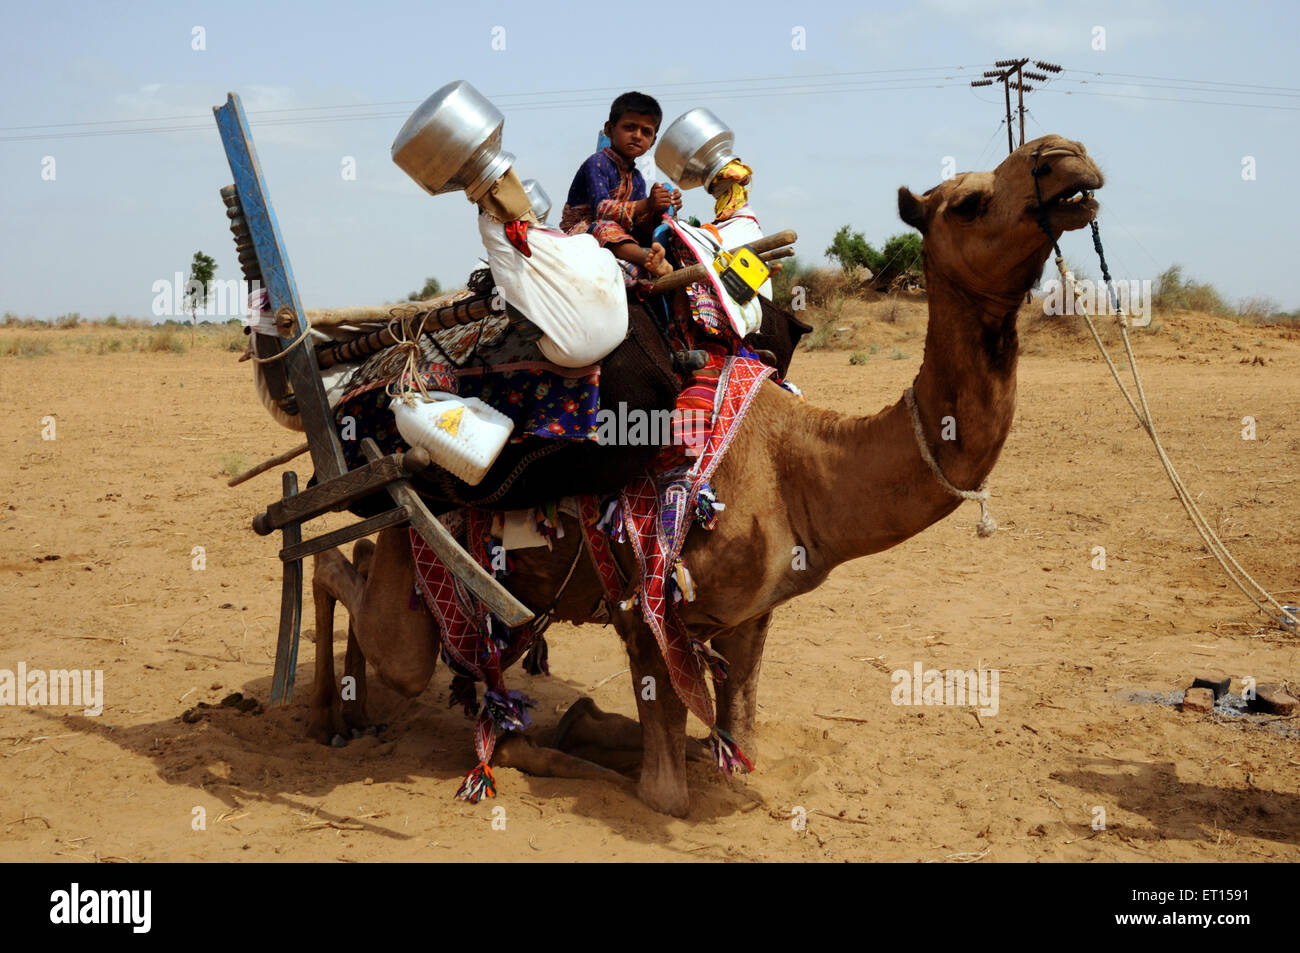 Camel carrying household thing and gypsy boy ; Kutch ; Gujarat ; India - Stock Image